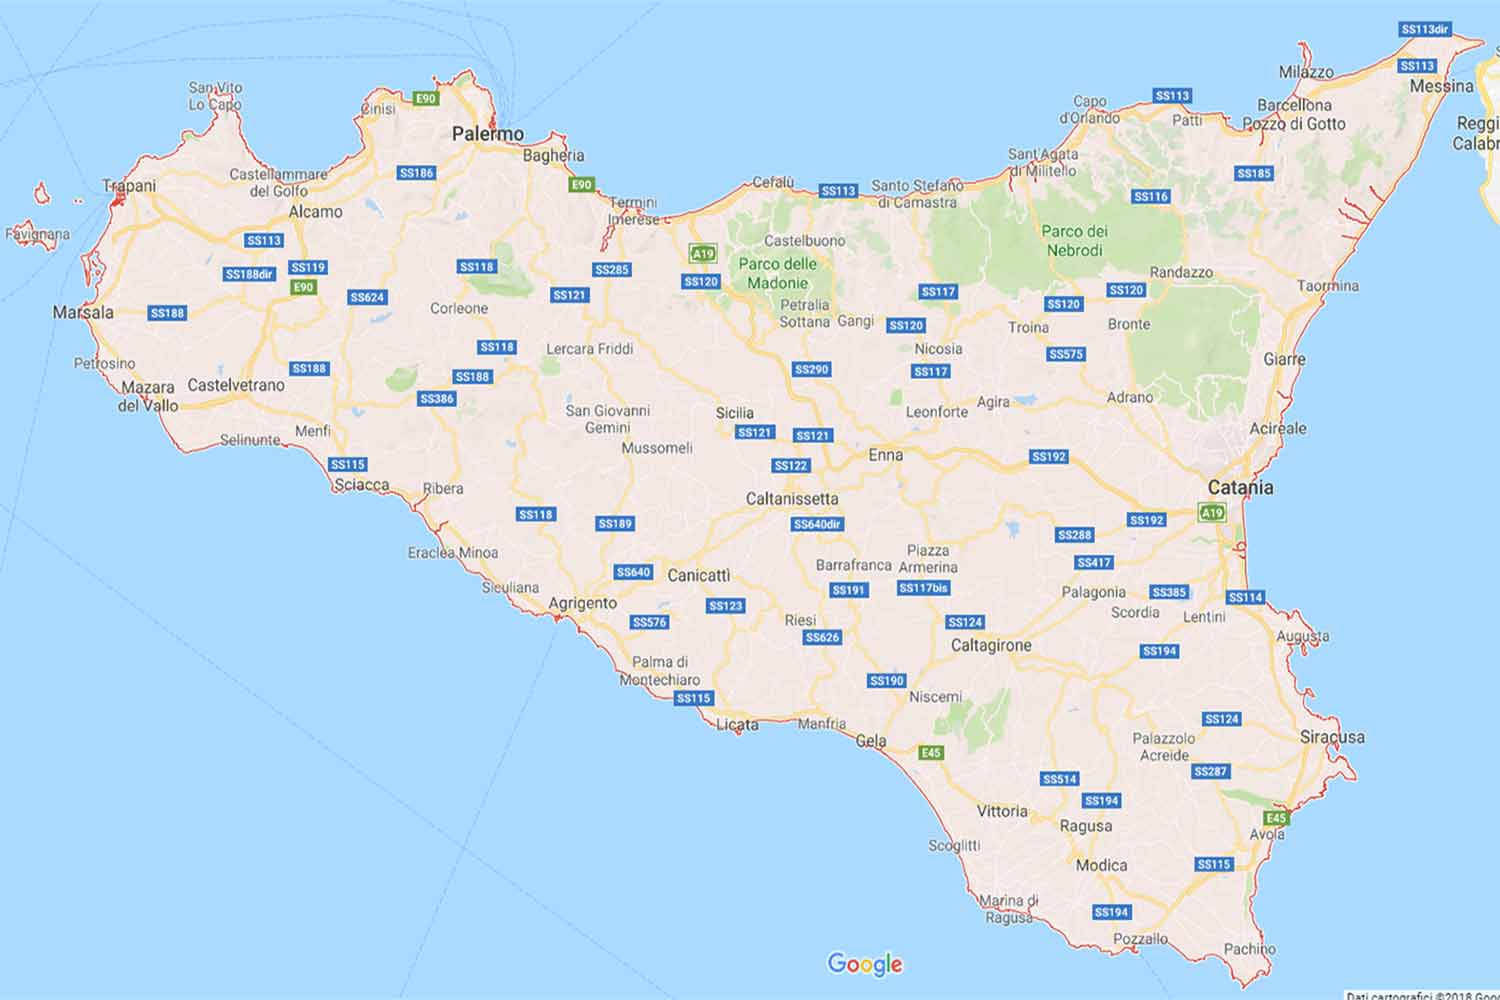 Sicilia - Messina Preventivi Veloci google maps